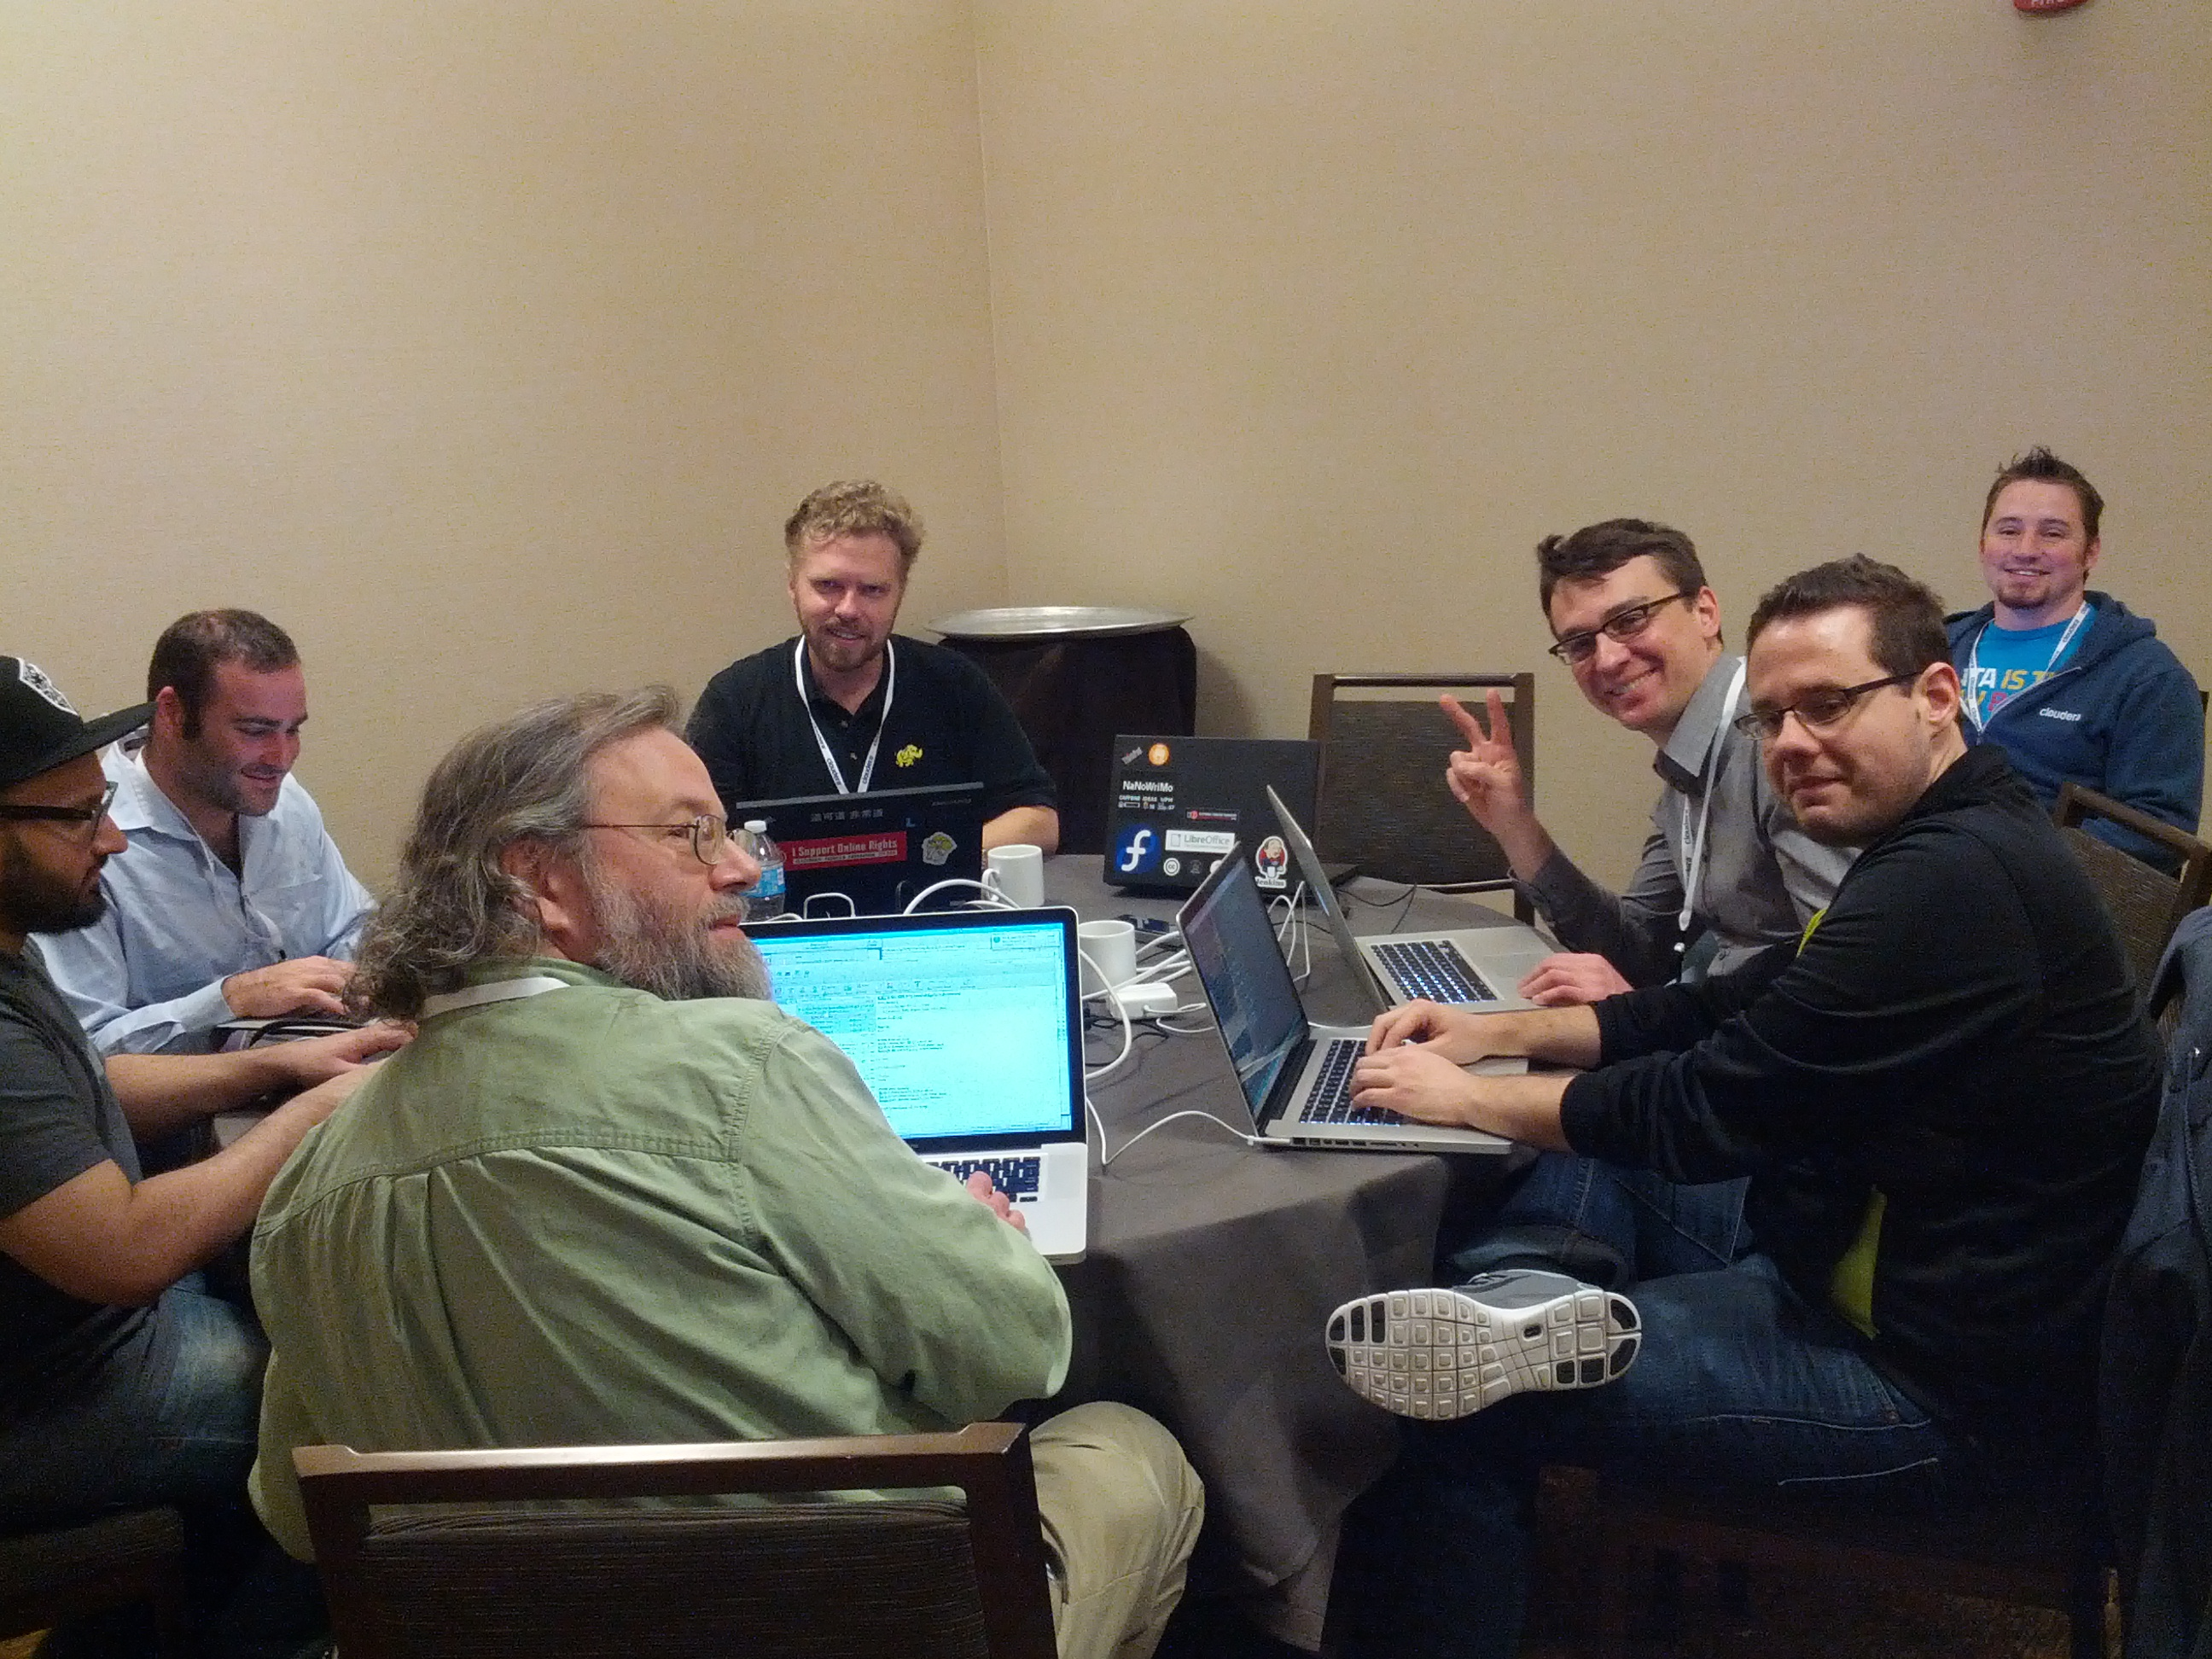 OSv hacking at Apachecon 2014